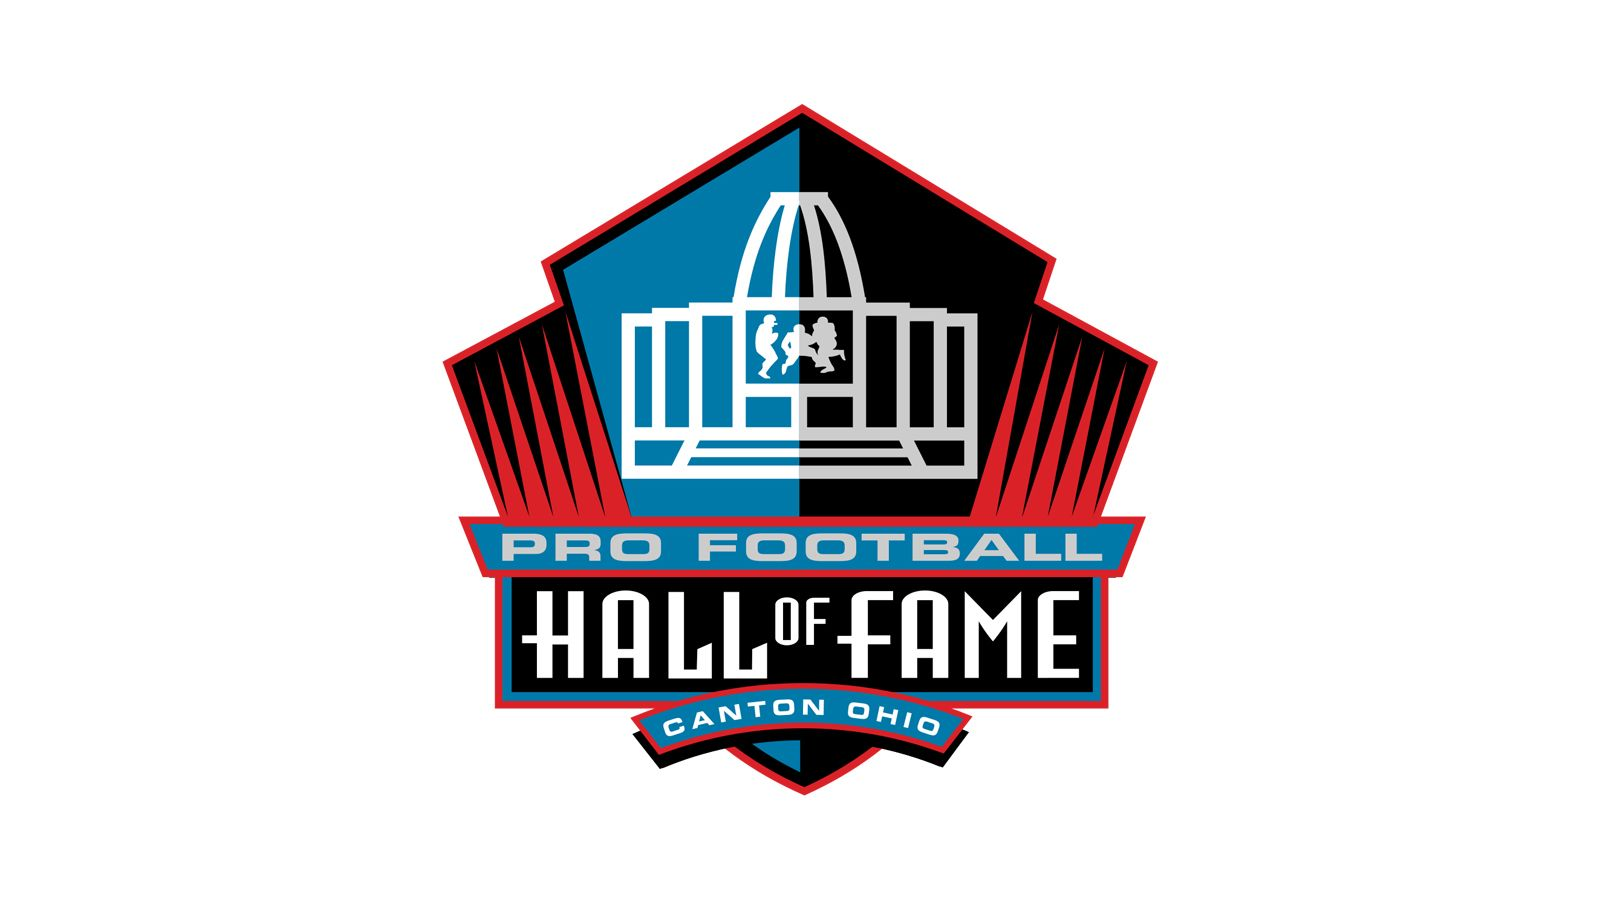 Pro Football Hall of Fame Youth & Education Program